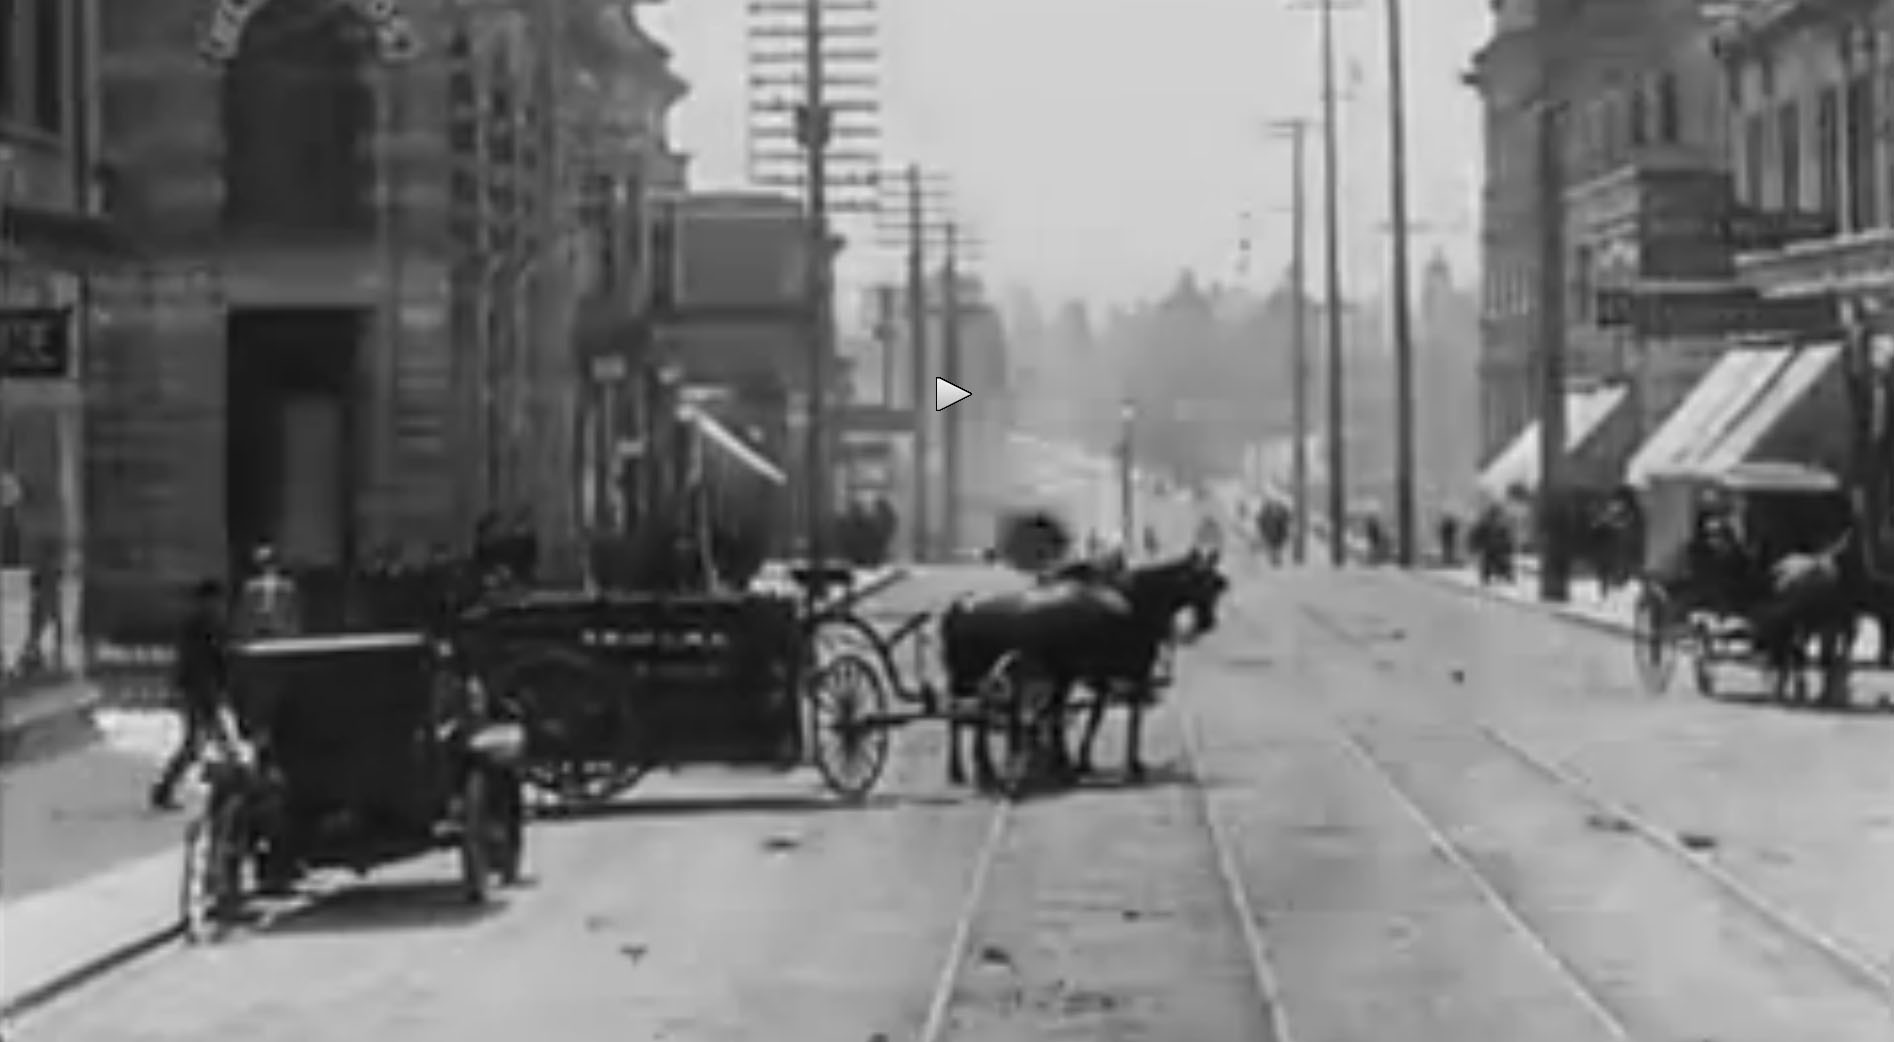 Amazing archive video shows life in Vancouver in 1900s